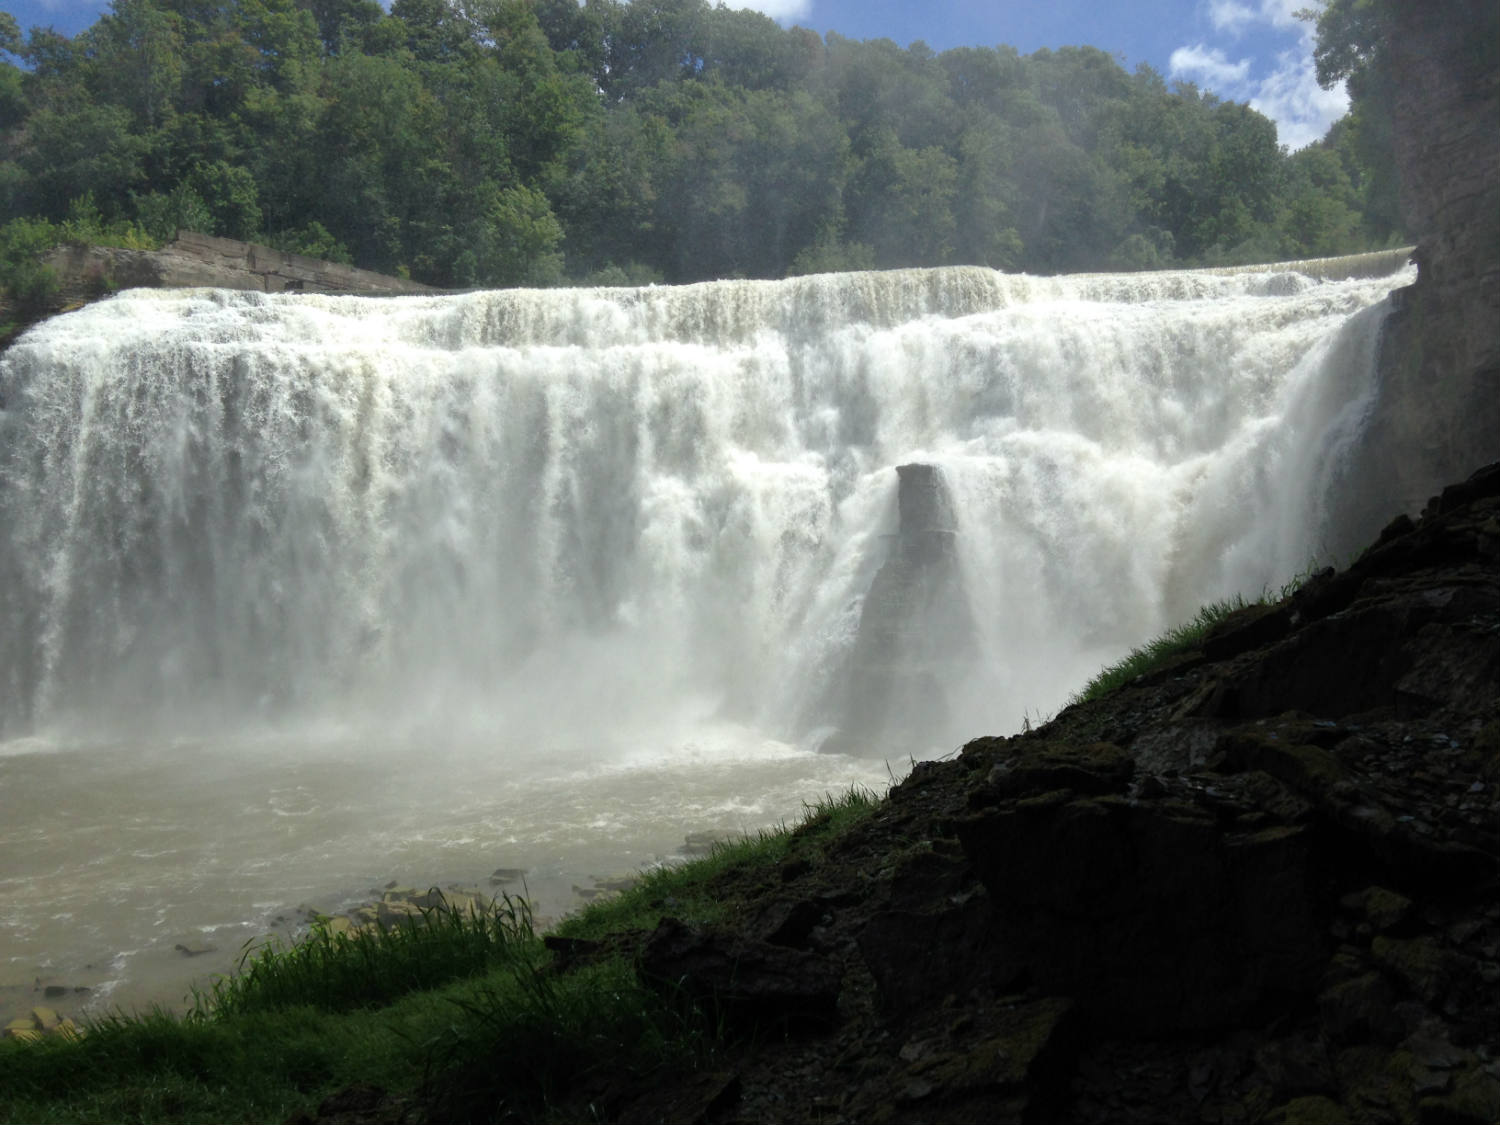 Lower Falls of the Genesee River in Rochester